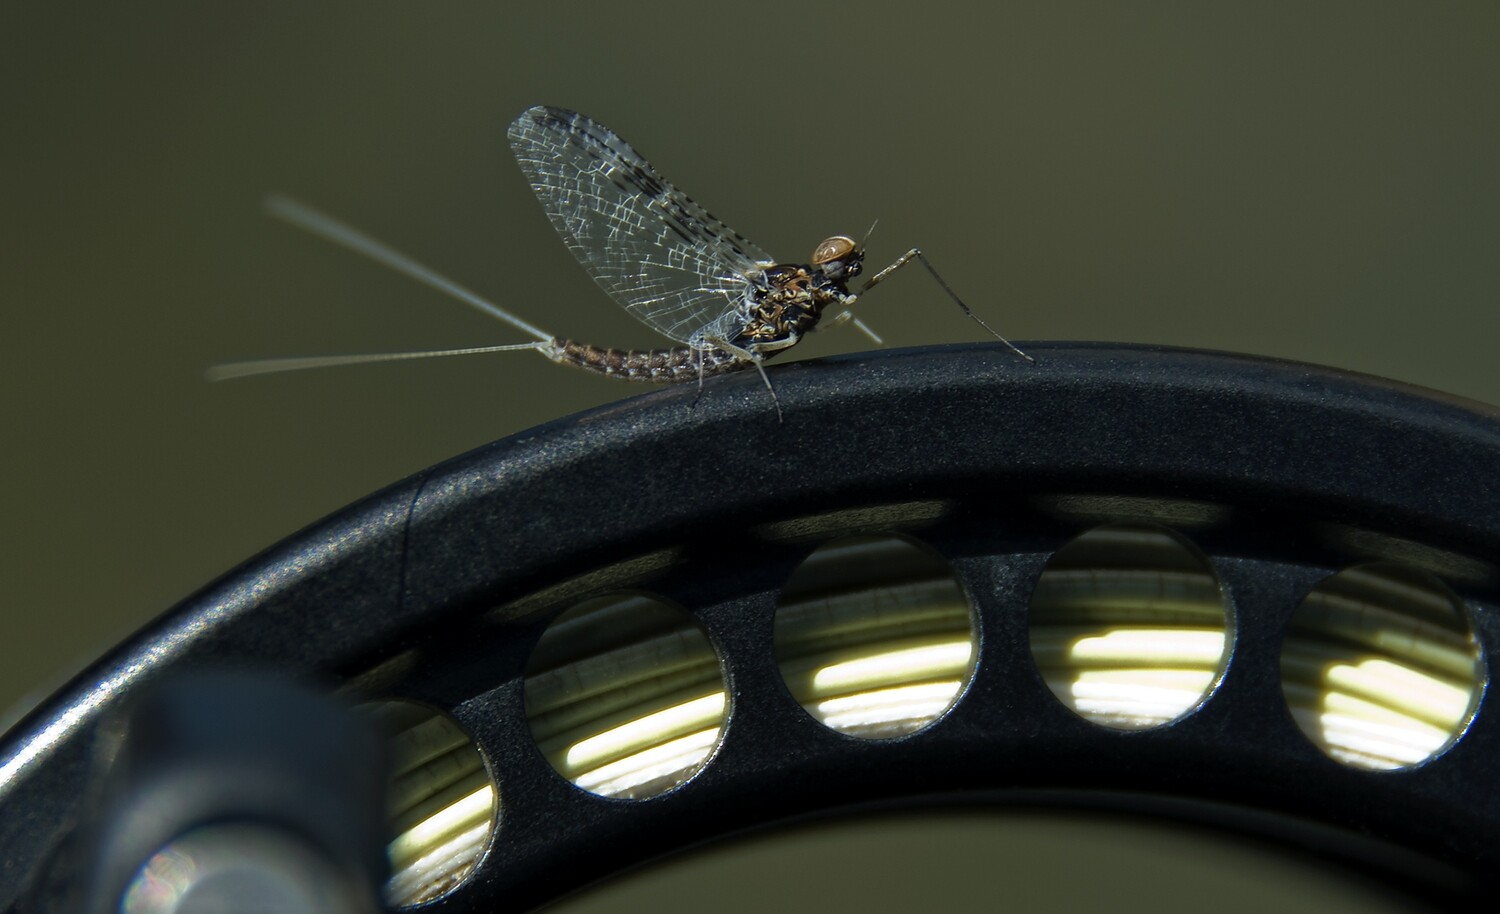 Photography on the Fly: Better Fly Fishing Photos